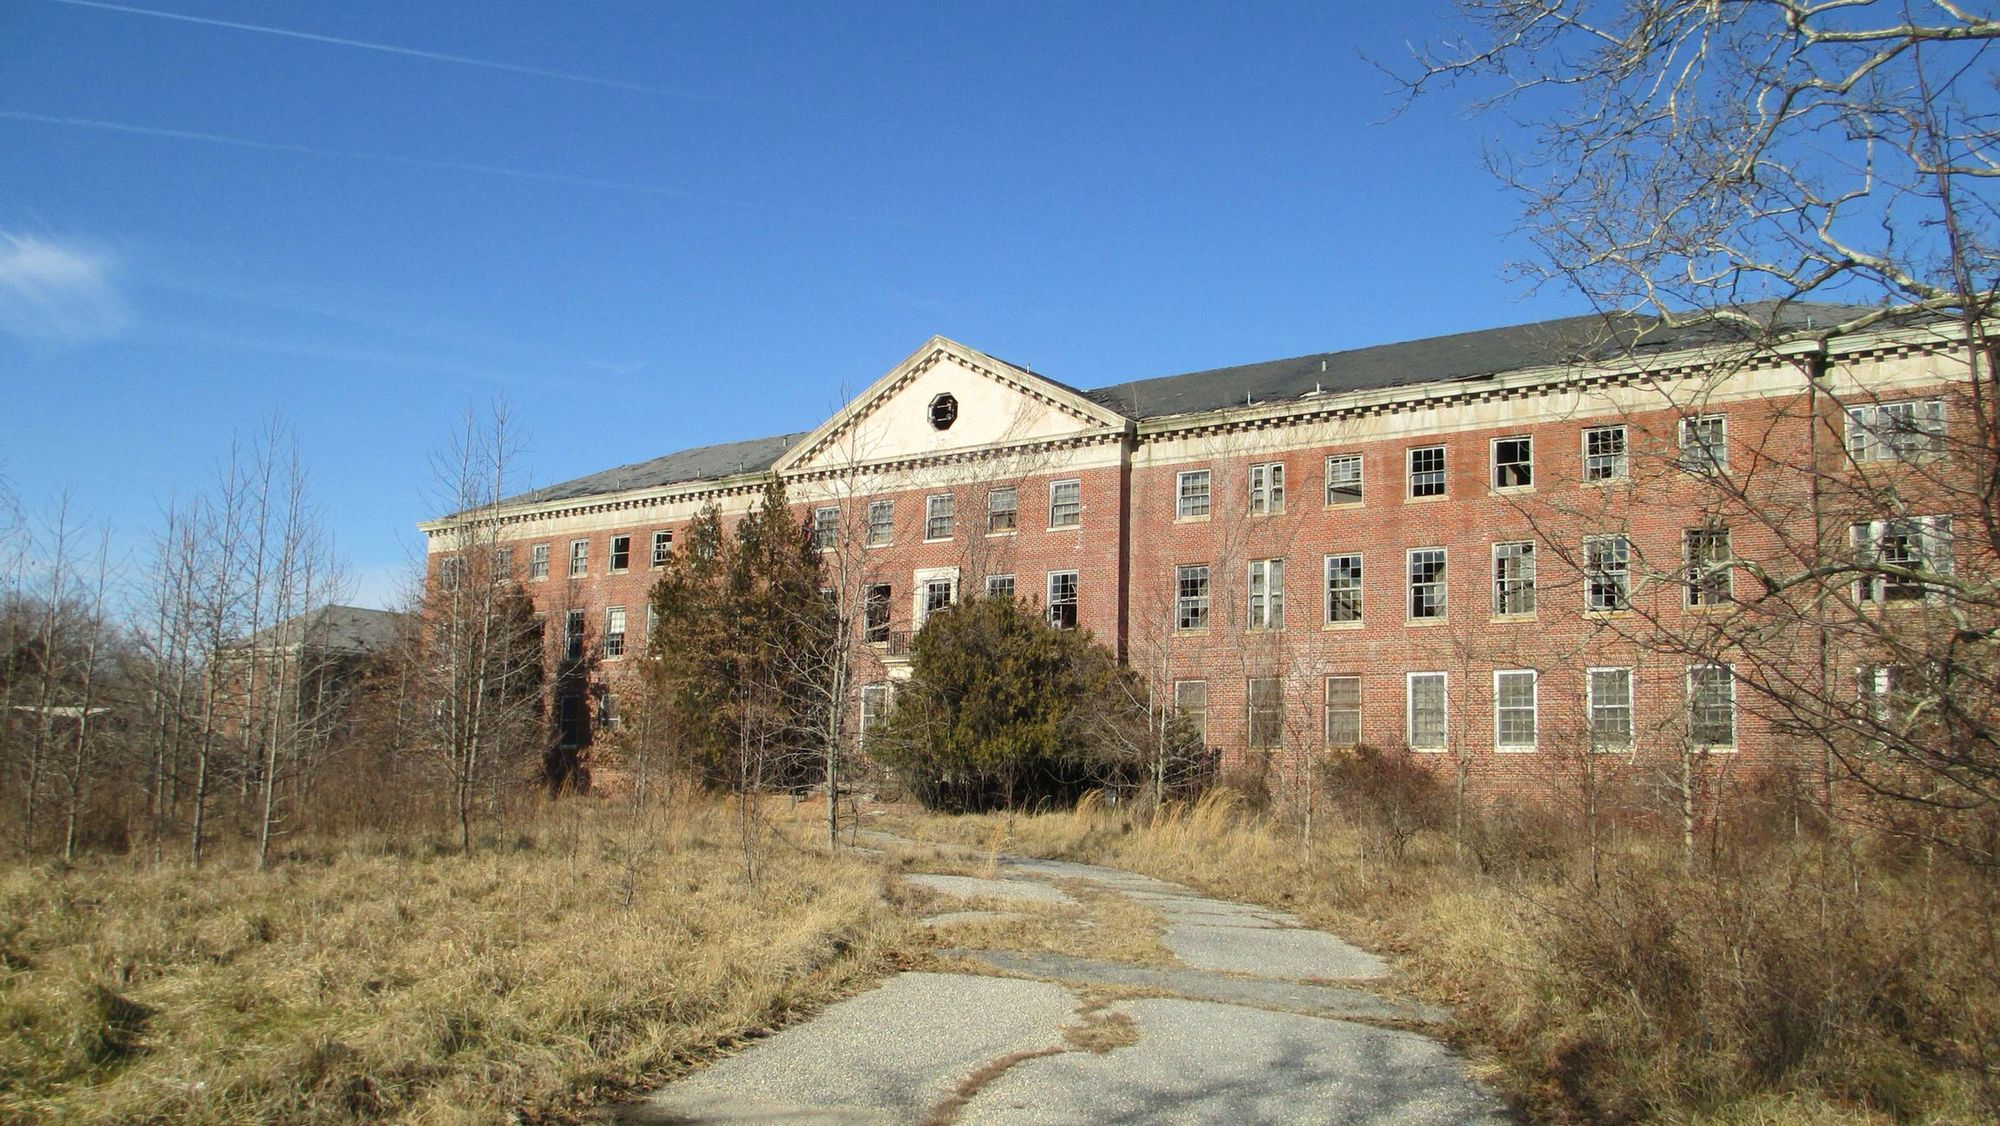 Glendale hospital, Maryland | Creepy abandoned places through out ...